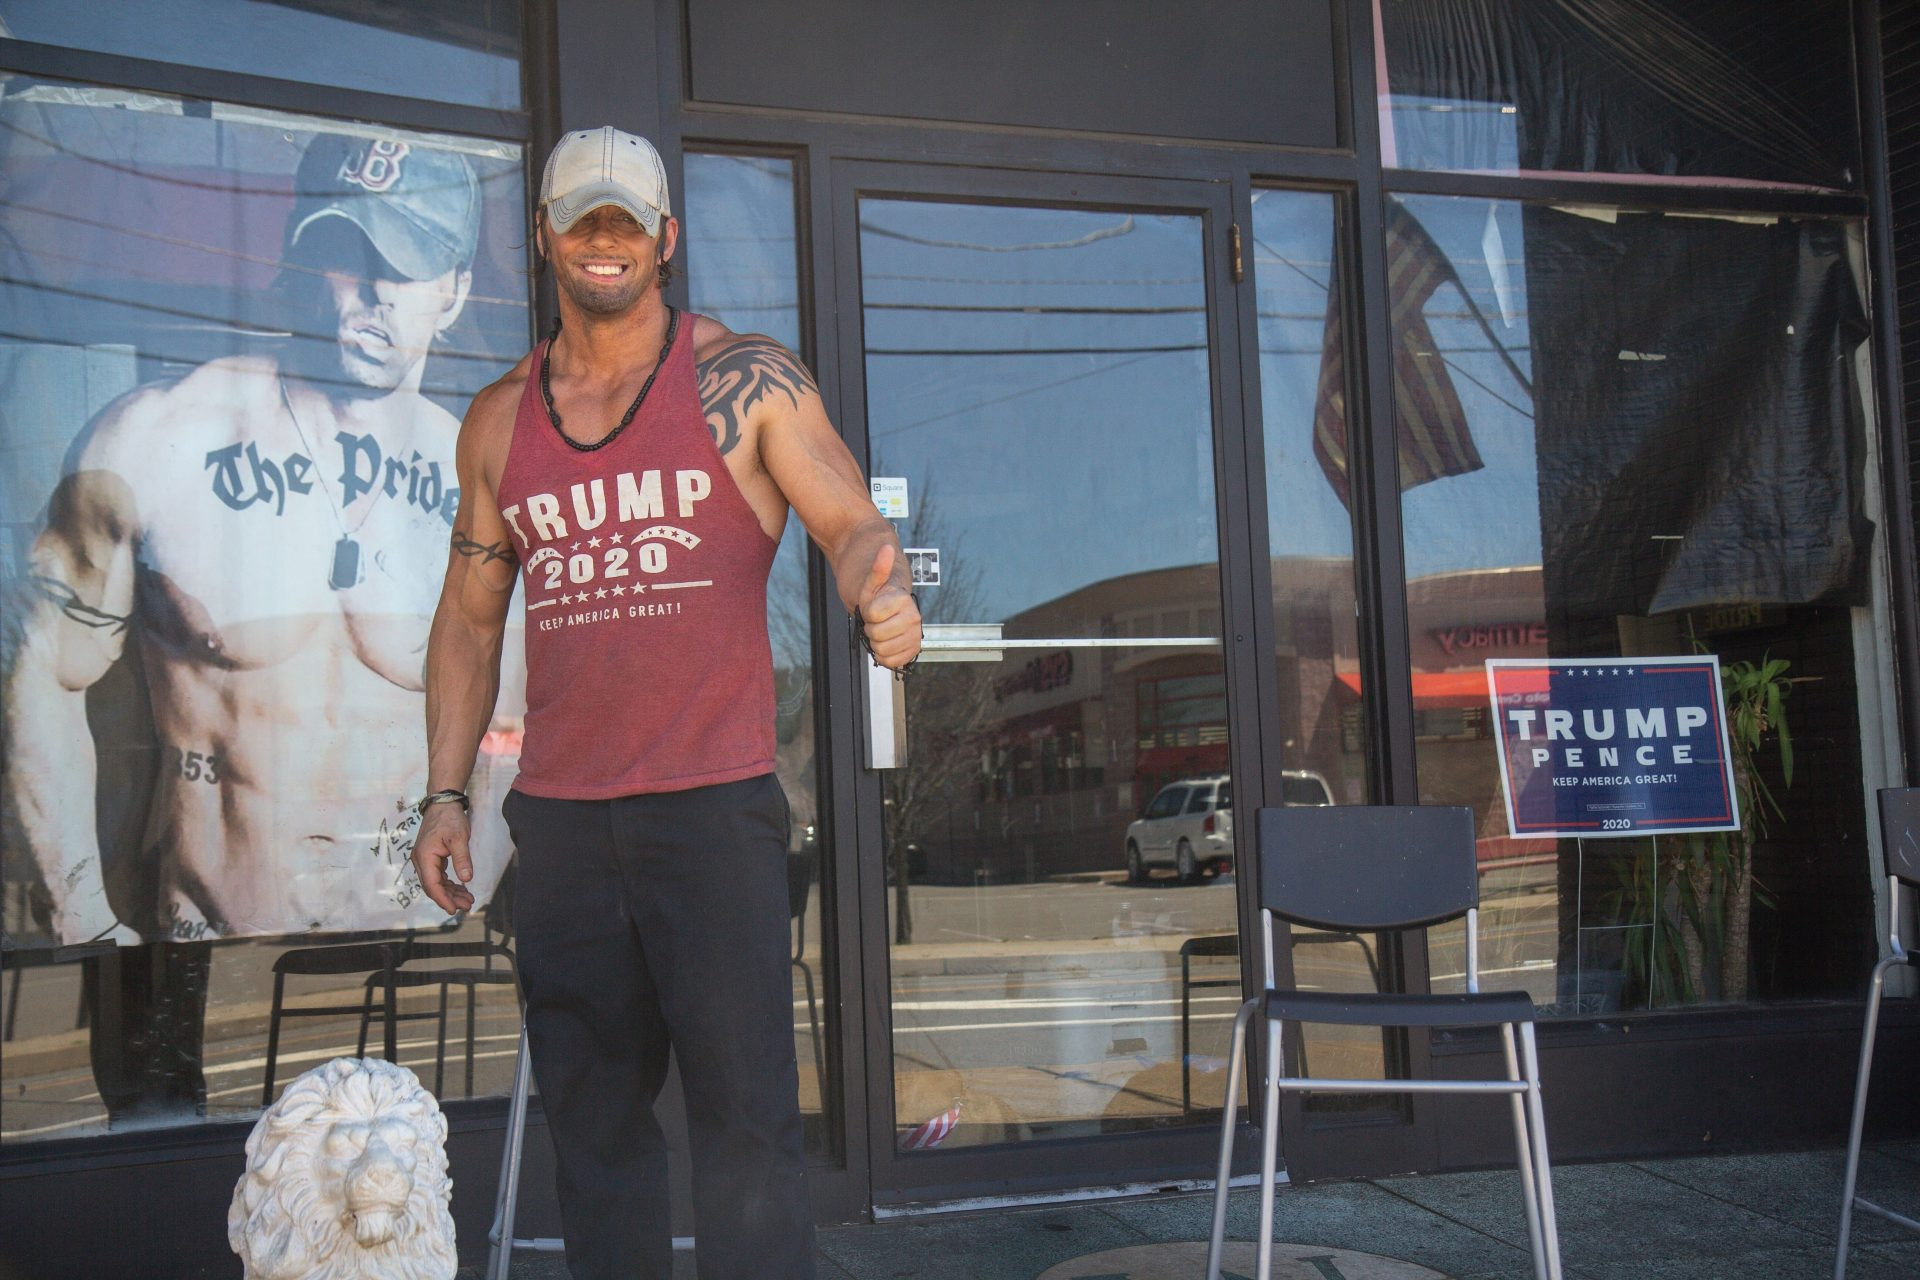 Merrit Boyle, who owns a personal training business in Old Forge, Pa., said he is a Trump supporter but would support Biden if elected.